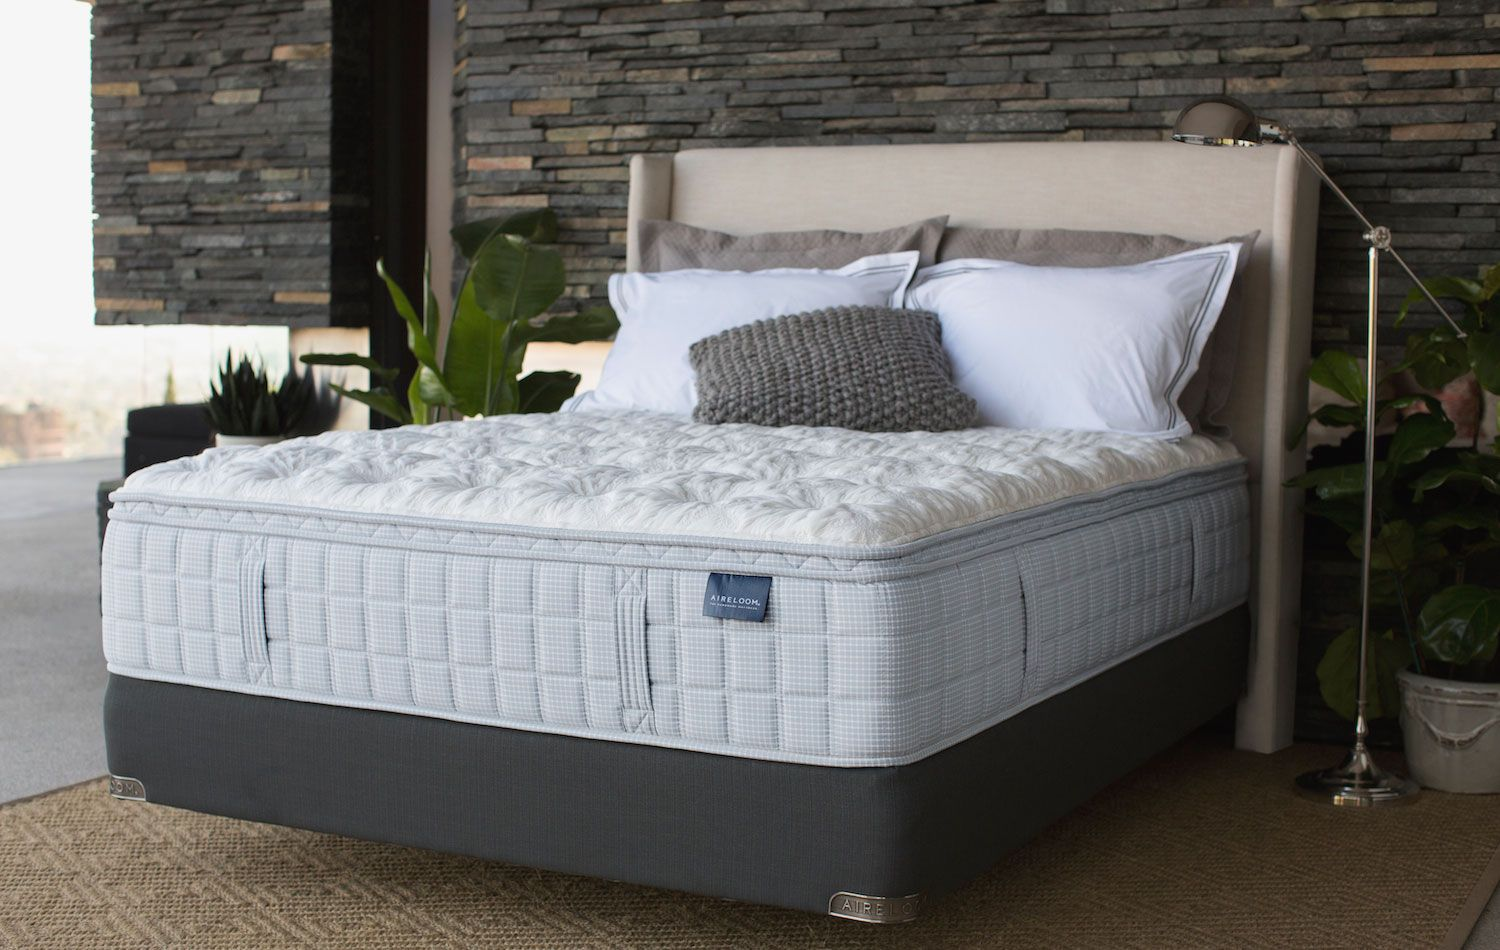 Most Expensive Mattresses In The World For Your Bed Today Bedroom Design Aireloom Mattress Furniture